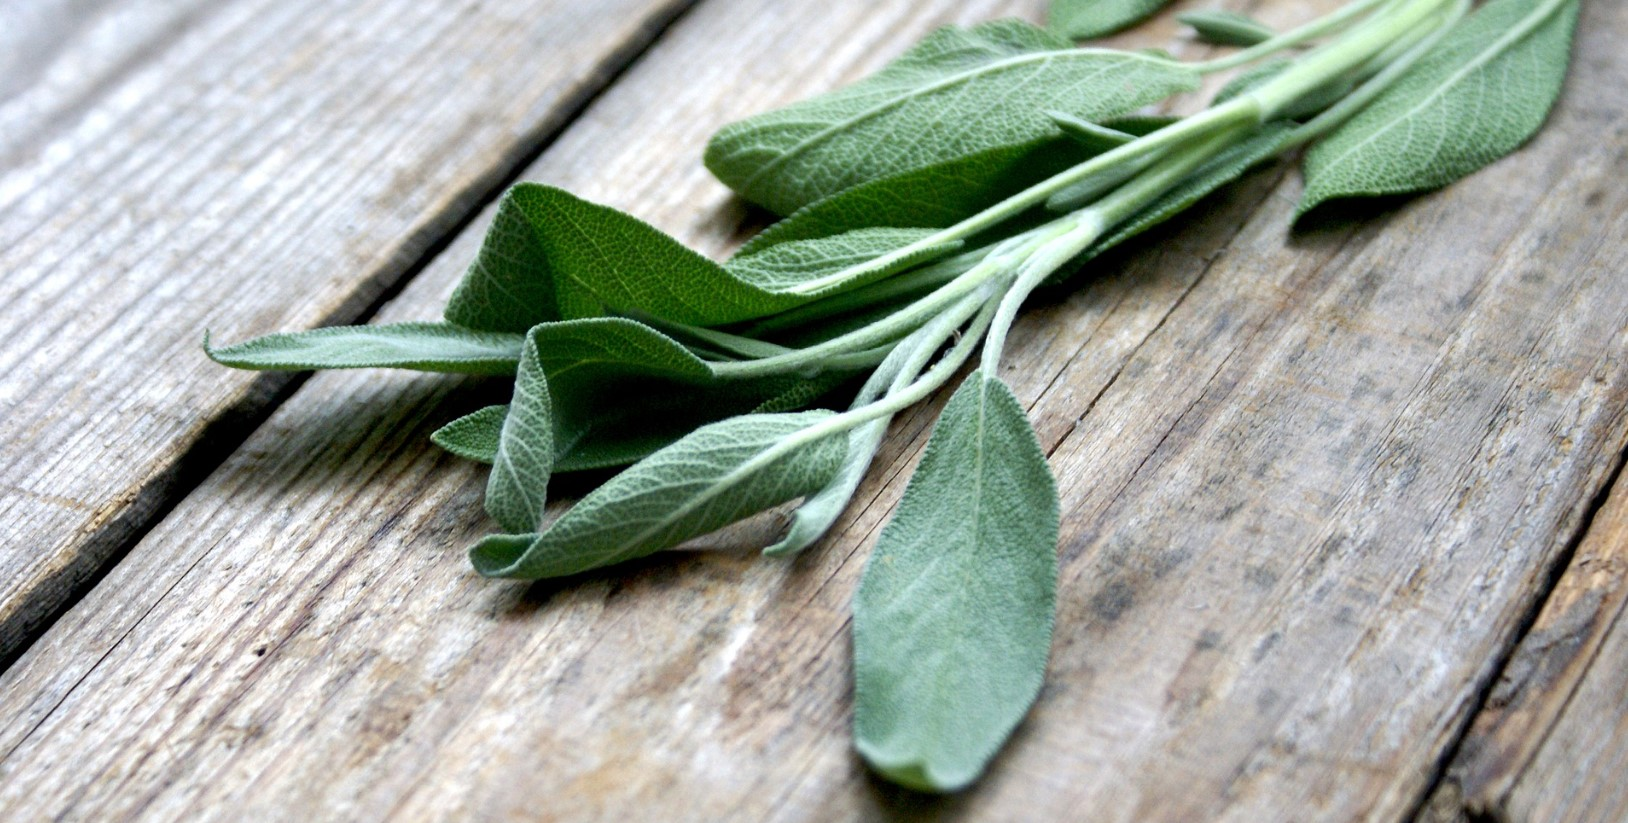 Sage leaves on wooden table